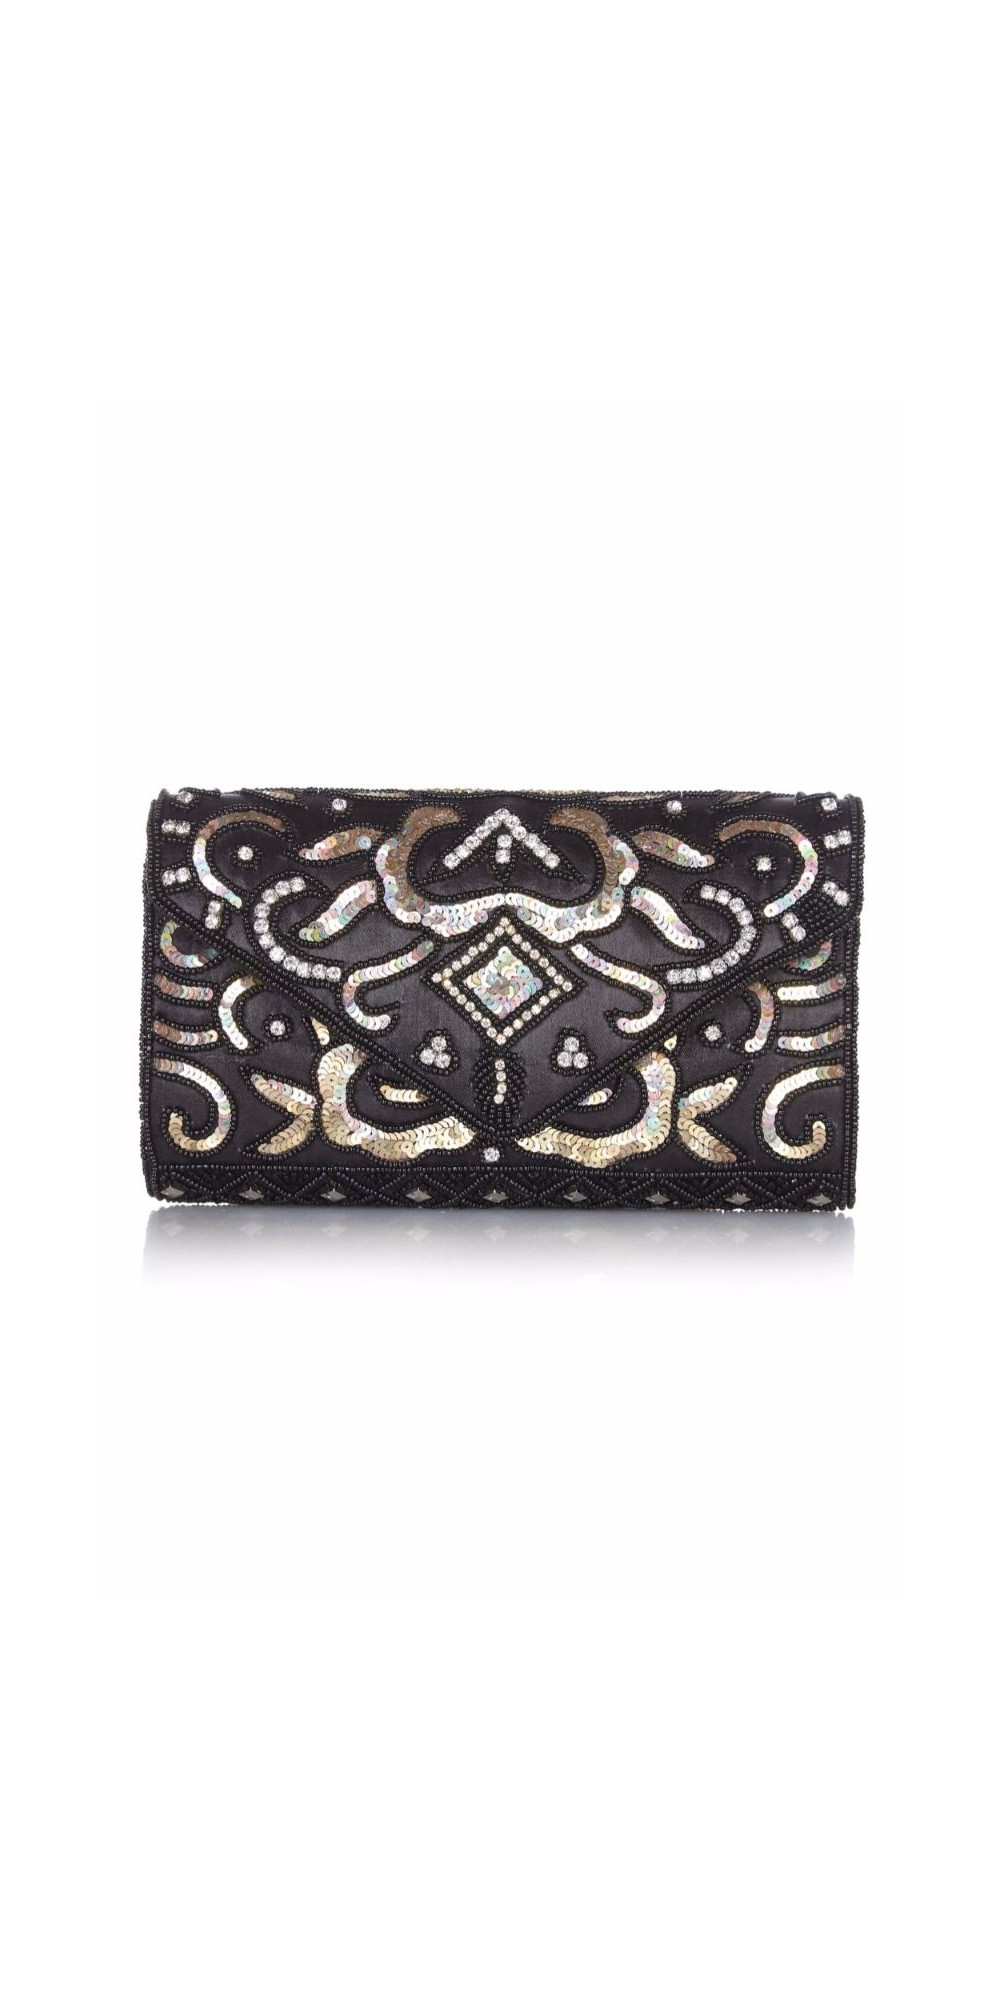 fair price exceptional range of styles best service Vintage Inspired Embellished Clutch Bag in Black Gold